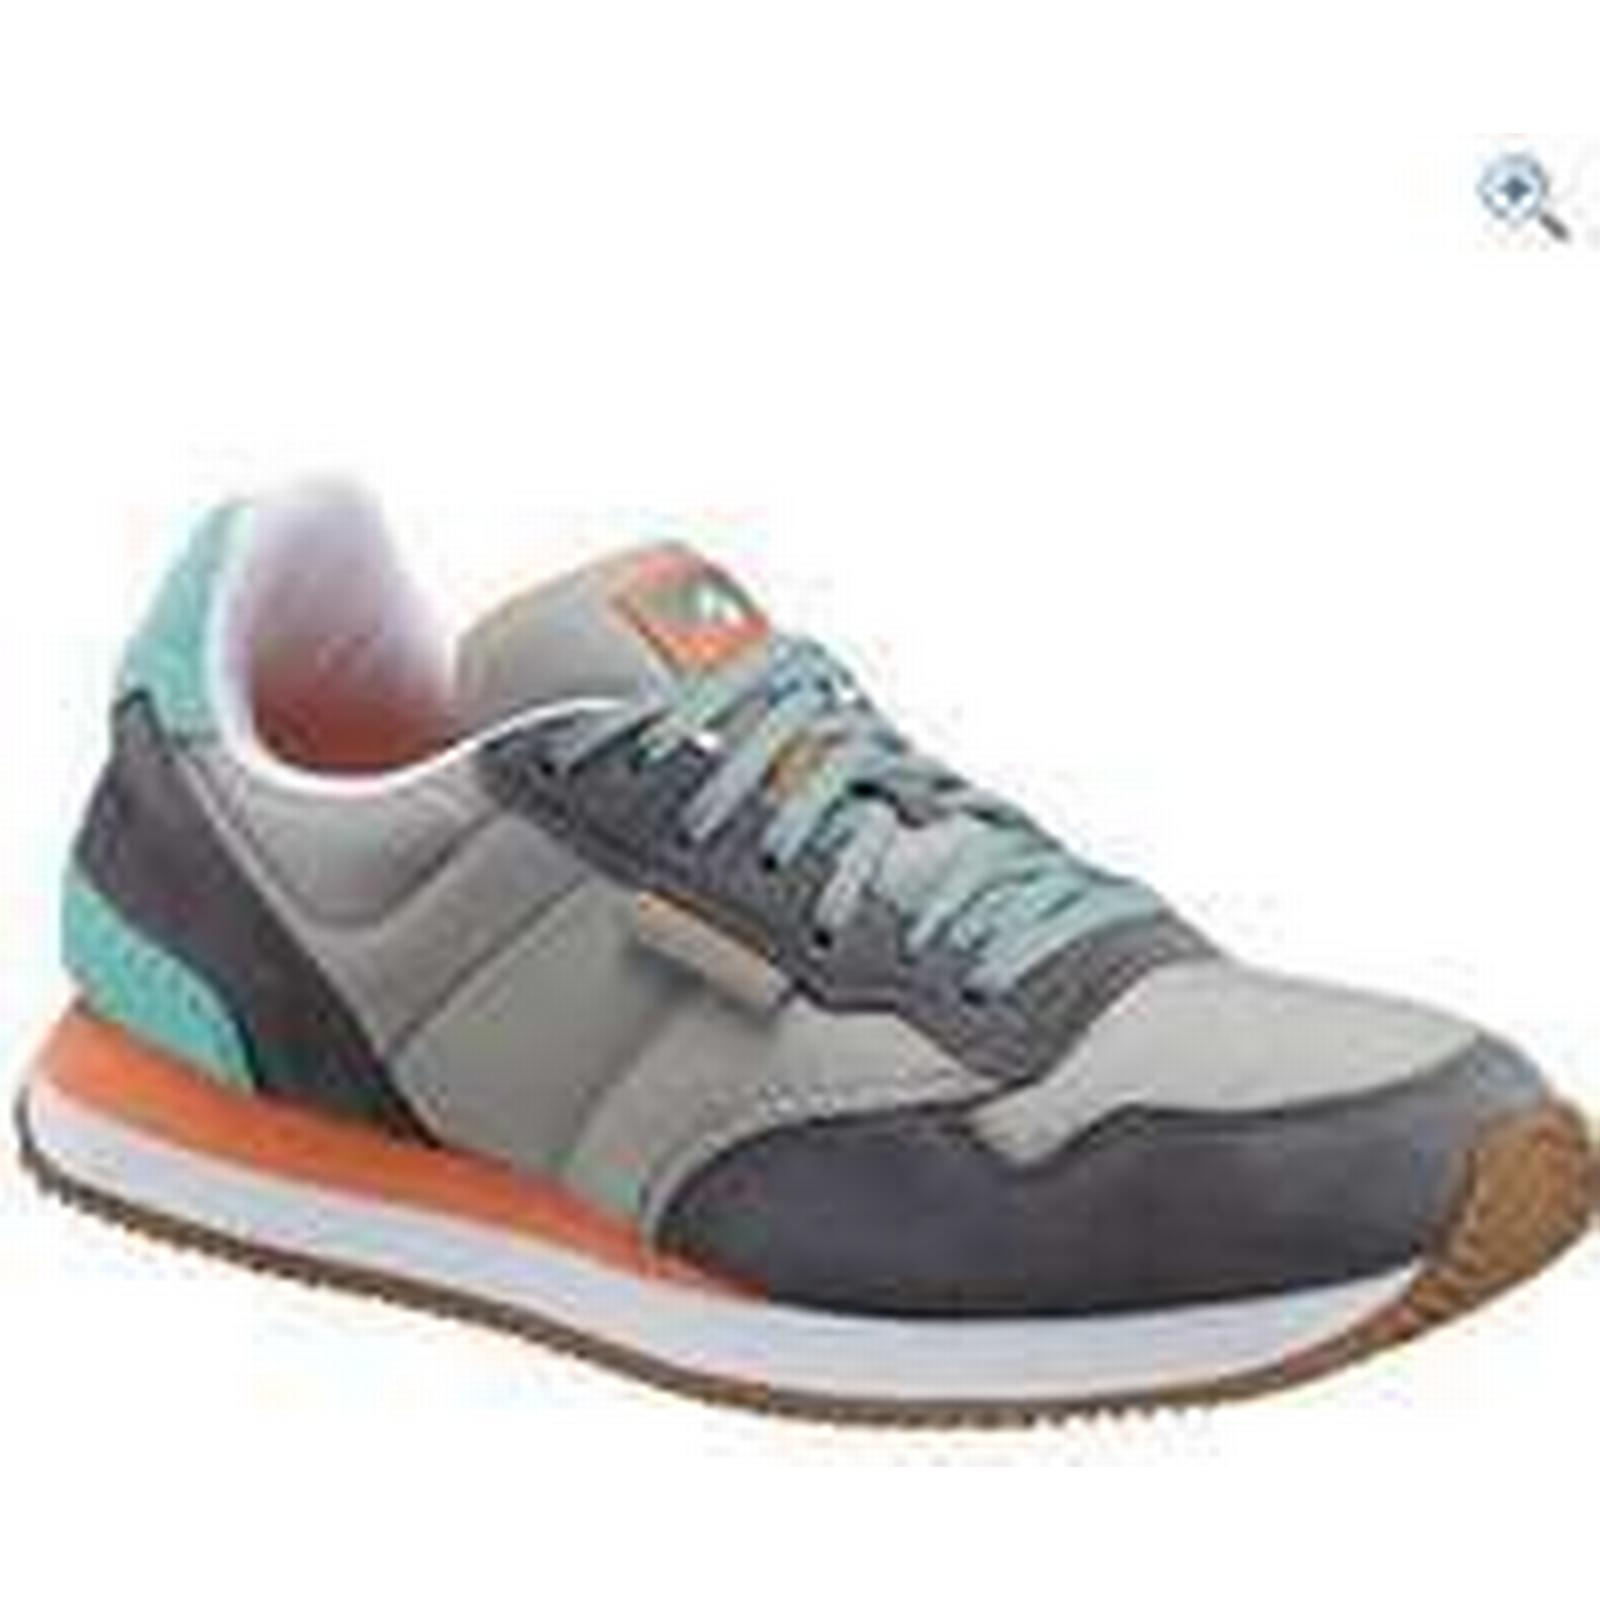 Columbia Women's Brussels - Trainers - Size: 7 - Brussels Colour: STEAM-JUNIPER bd5338